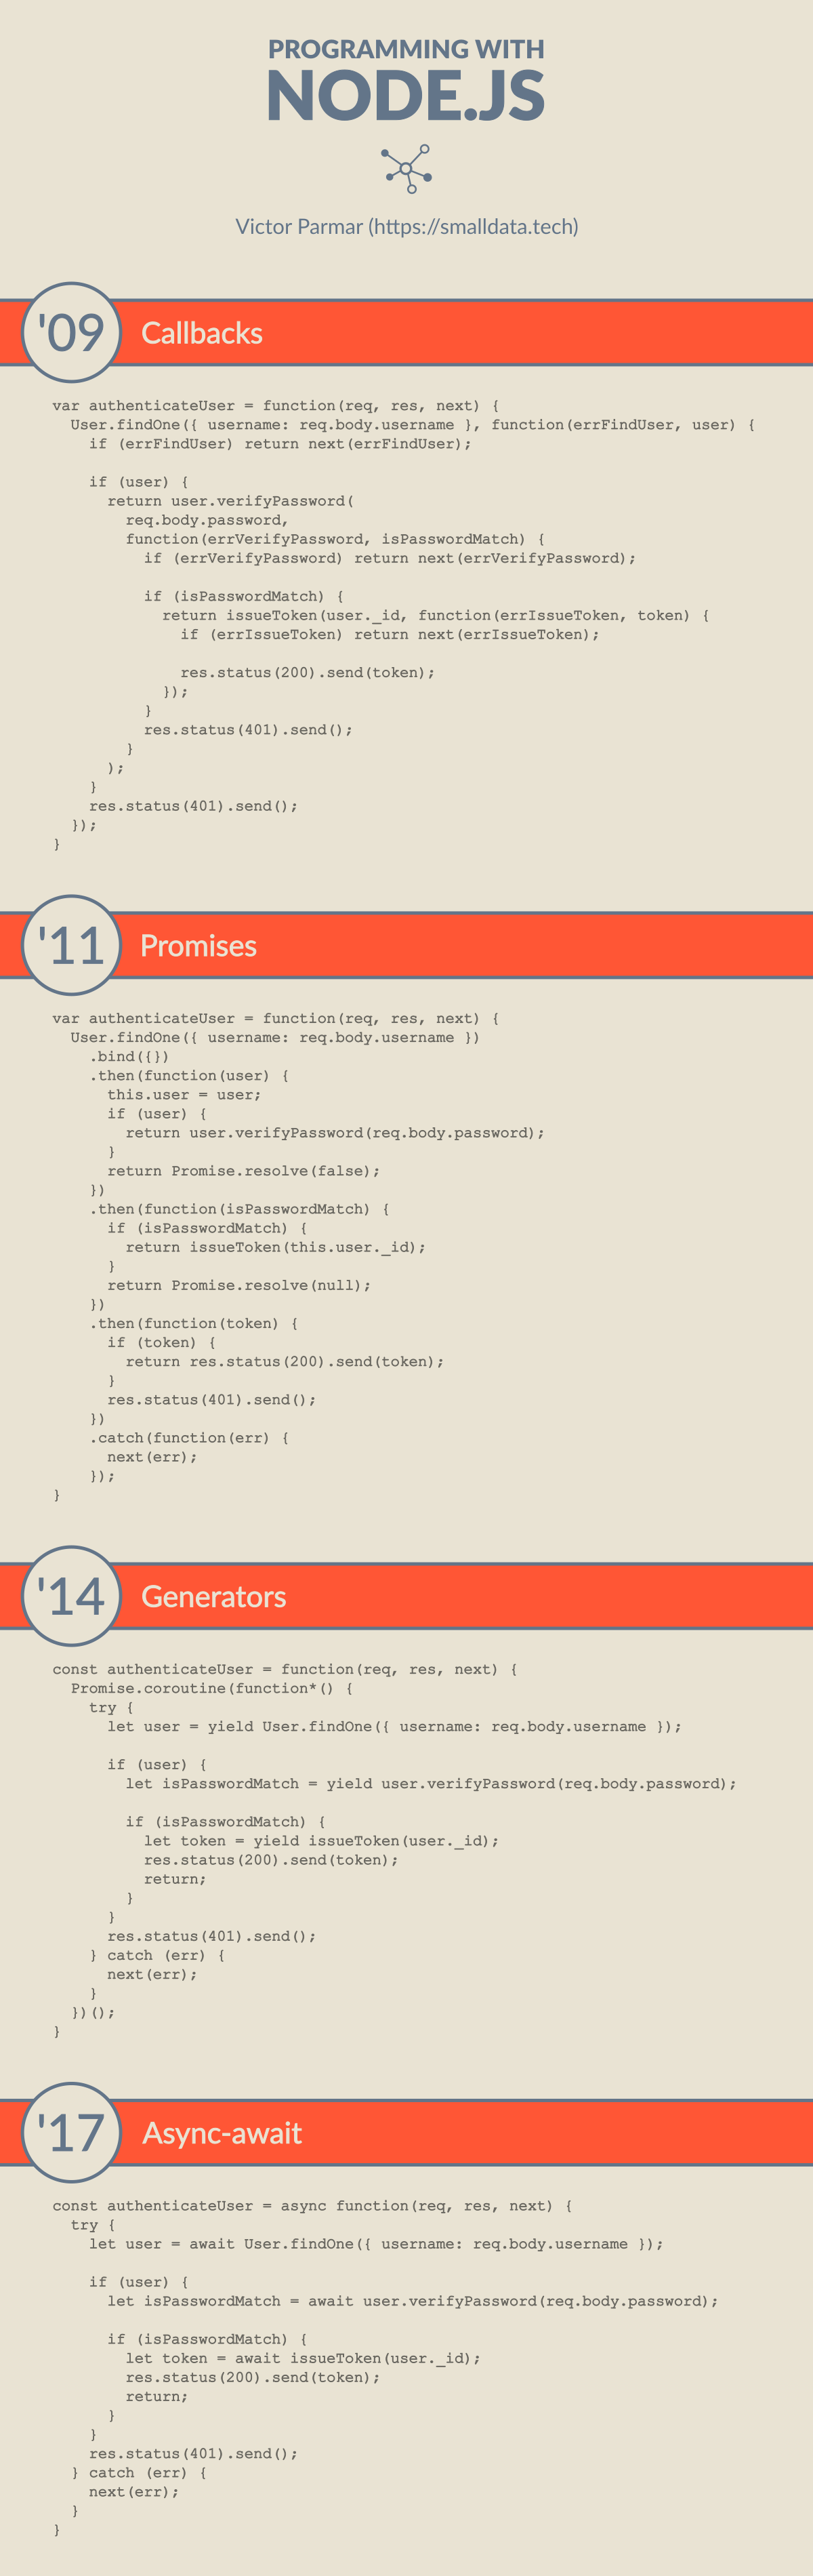 Programming with Node.js, a brief timeline of callbacks vs promises vs generators vs async-await